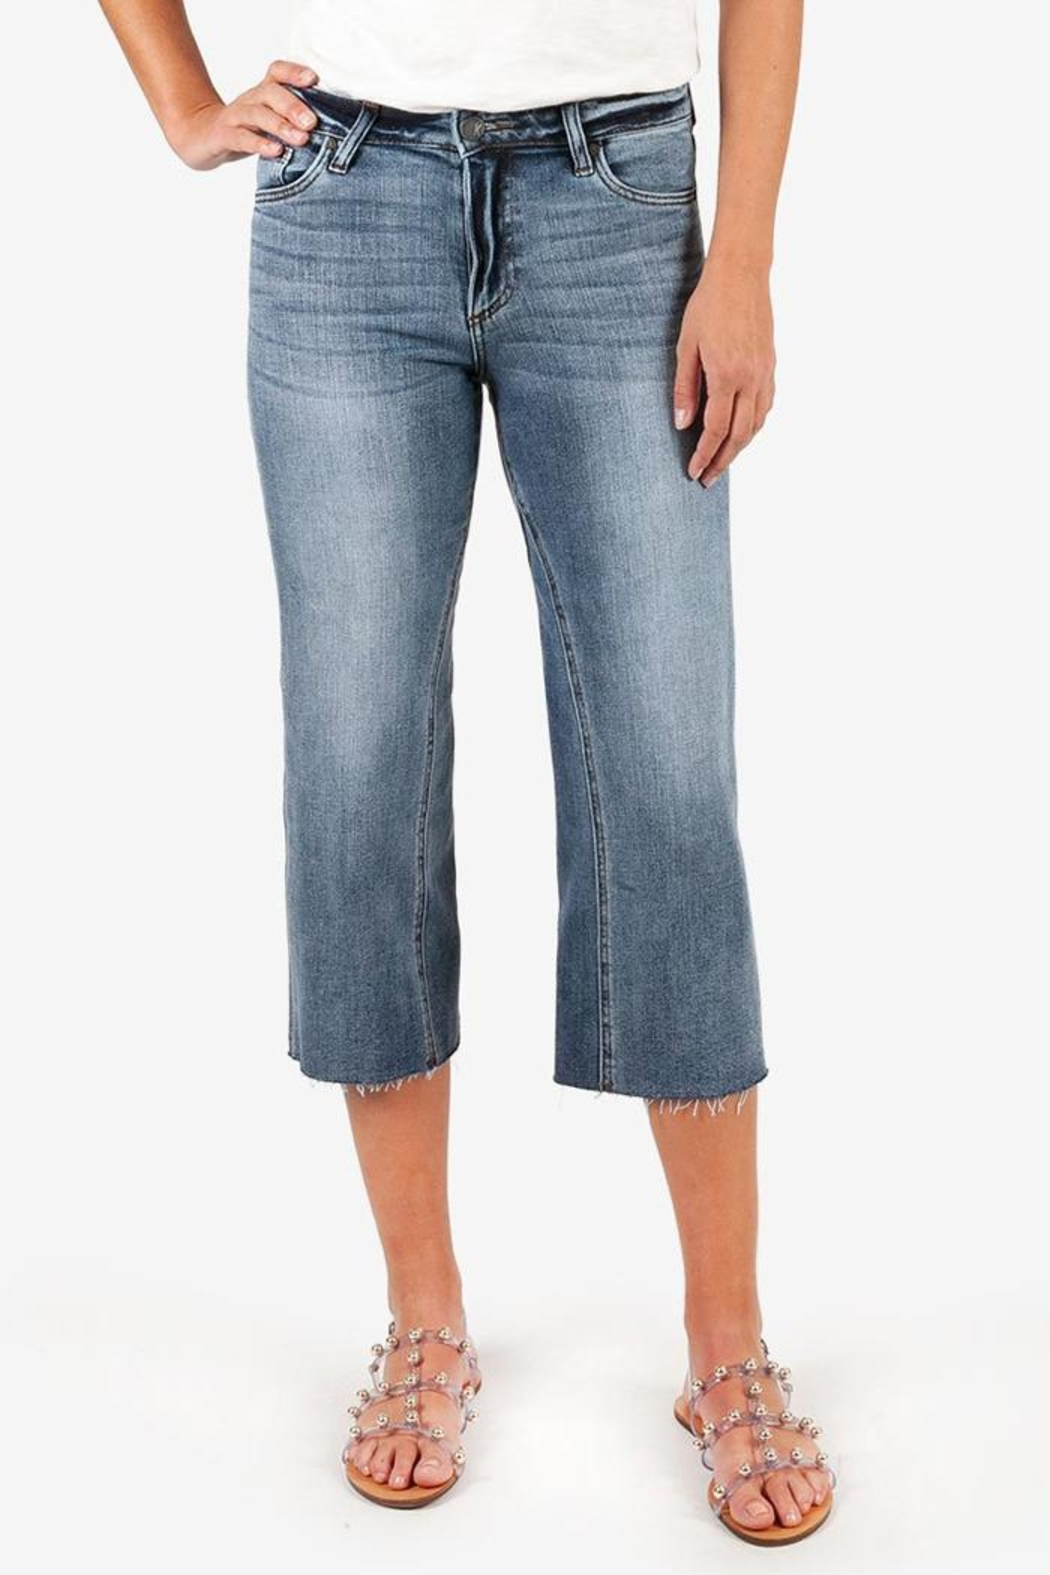 Kut from the Cloth Charlotte Culotte Jean - Main Image